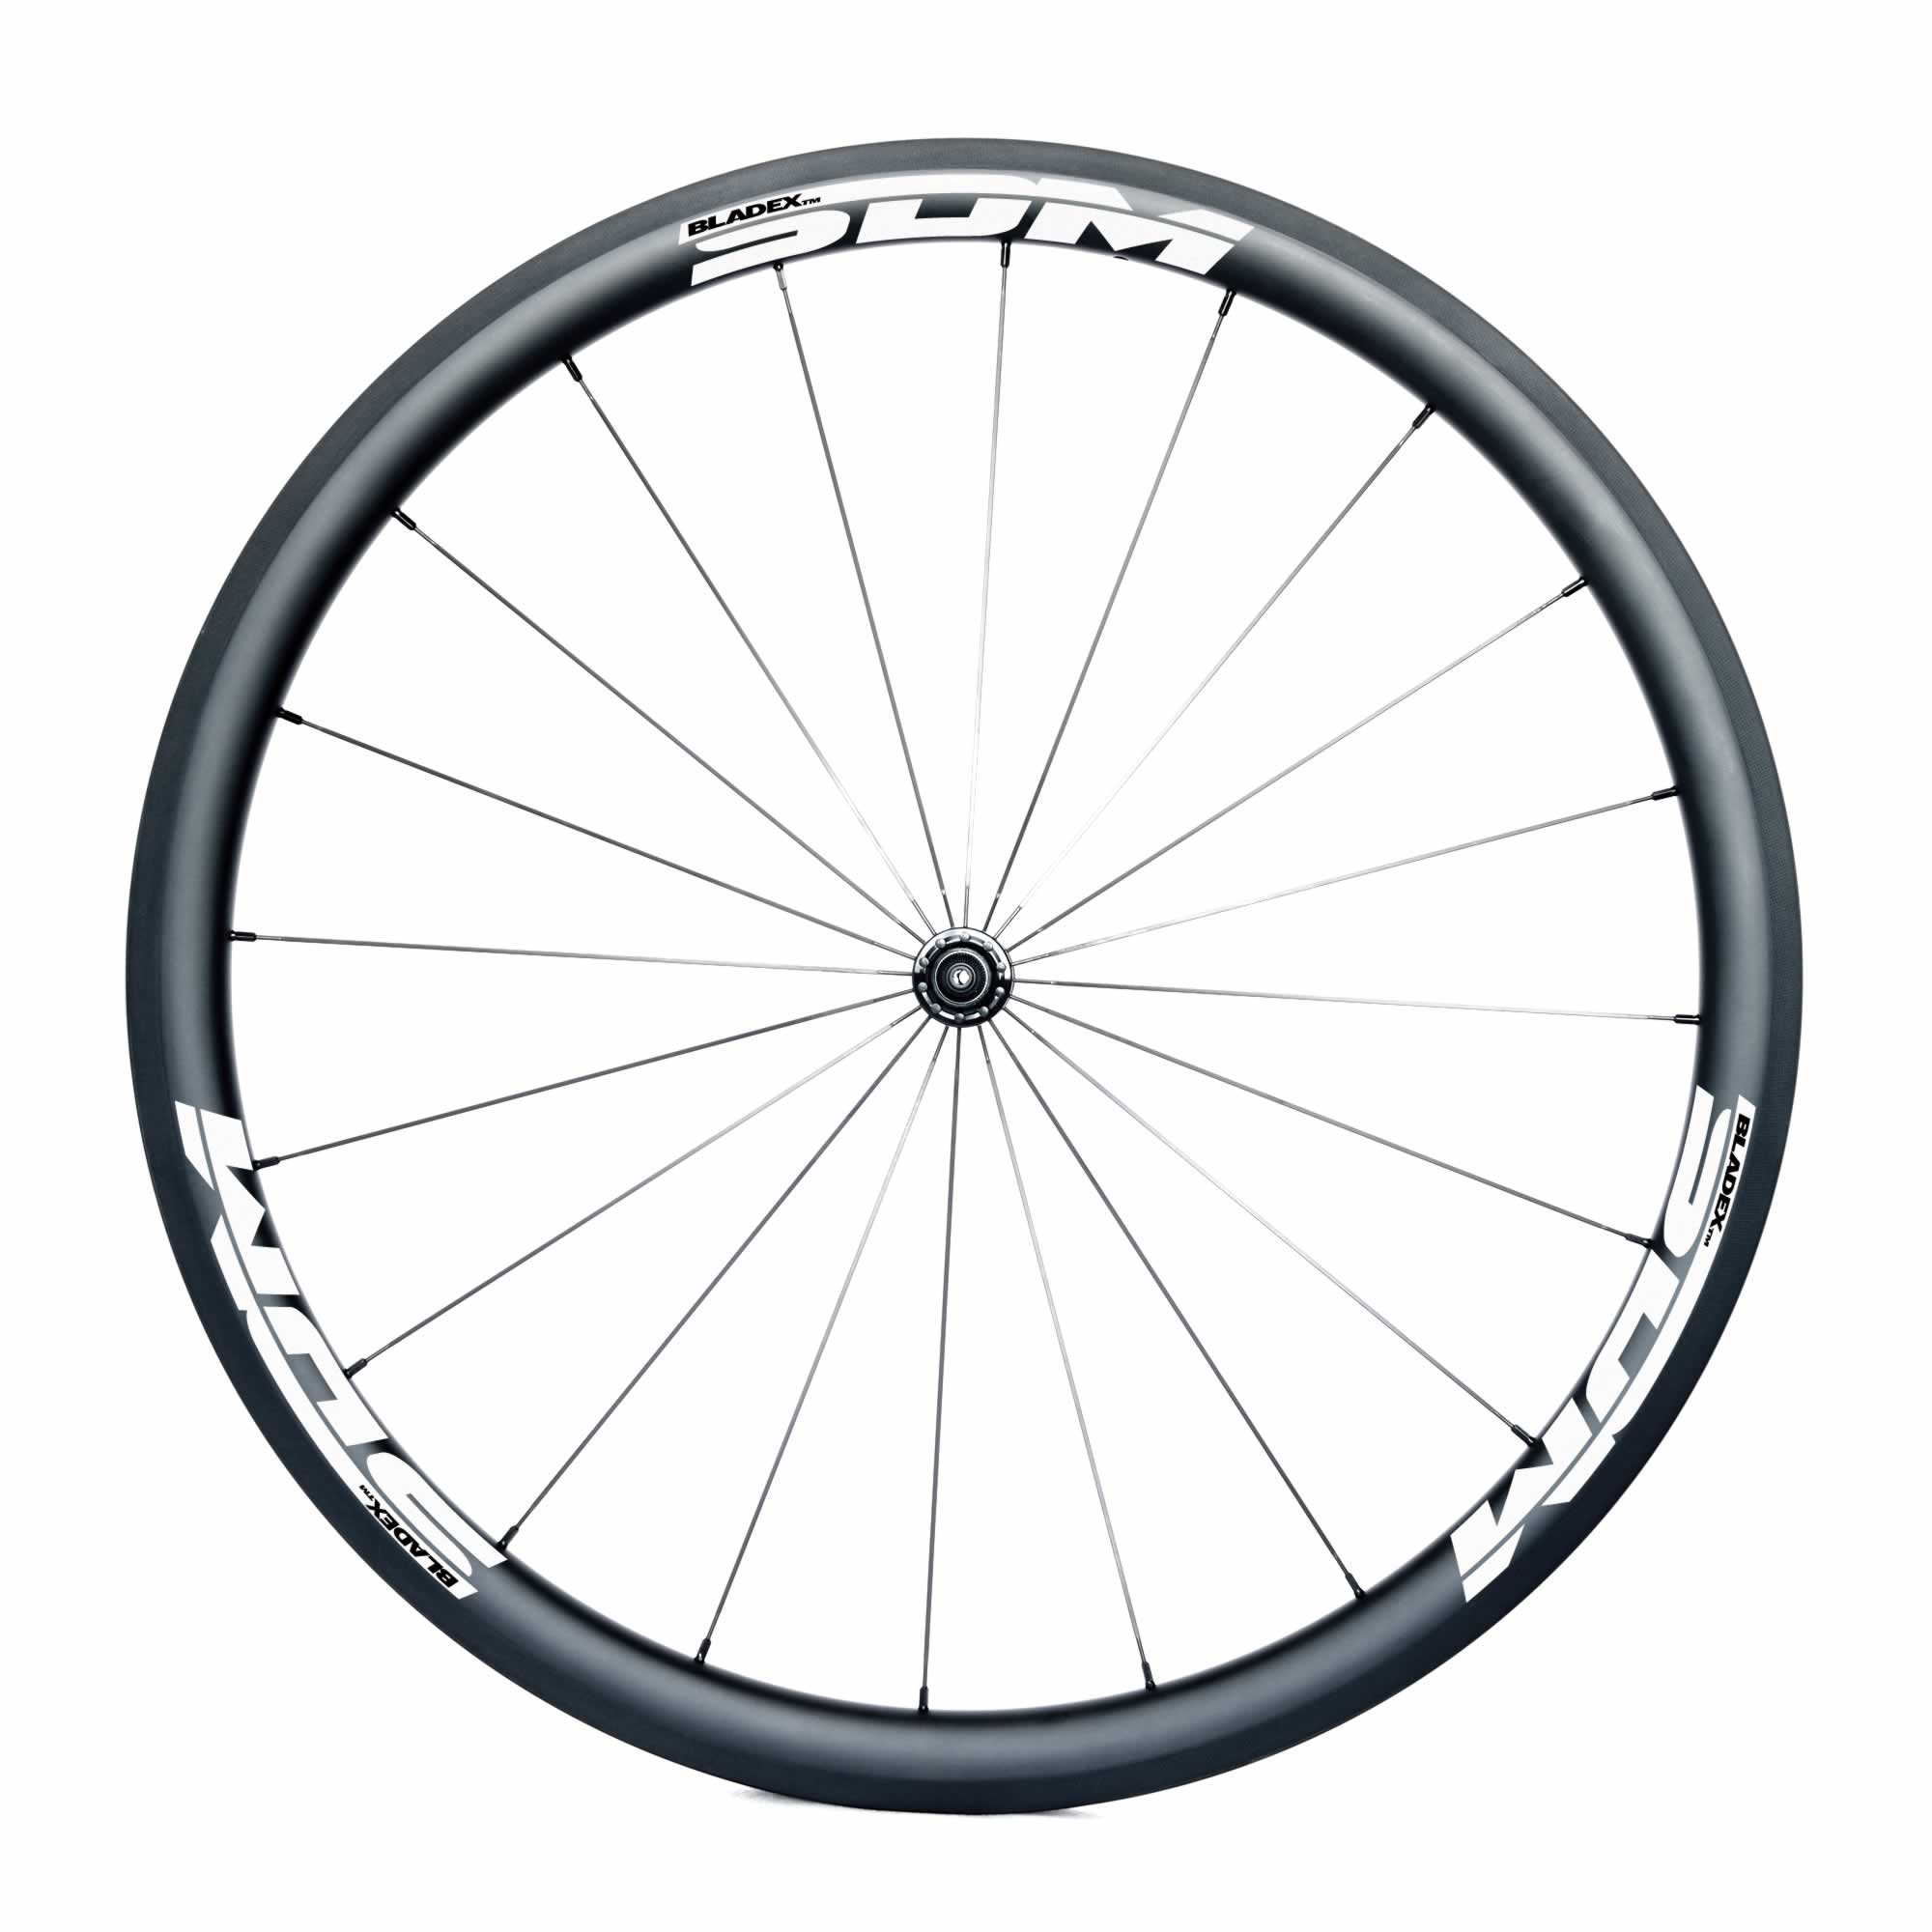 SDM 4 Carbon Road Bike Front Wheel UD Matte SDM White Logo